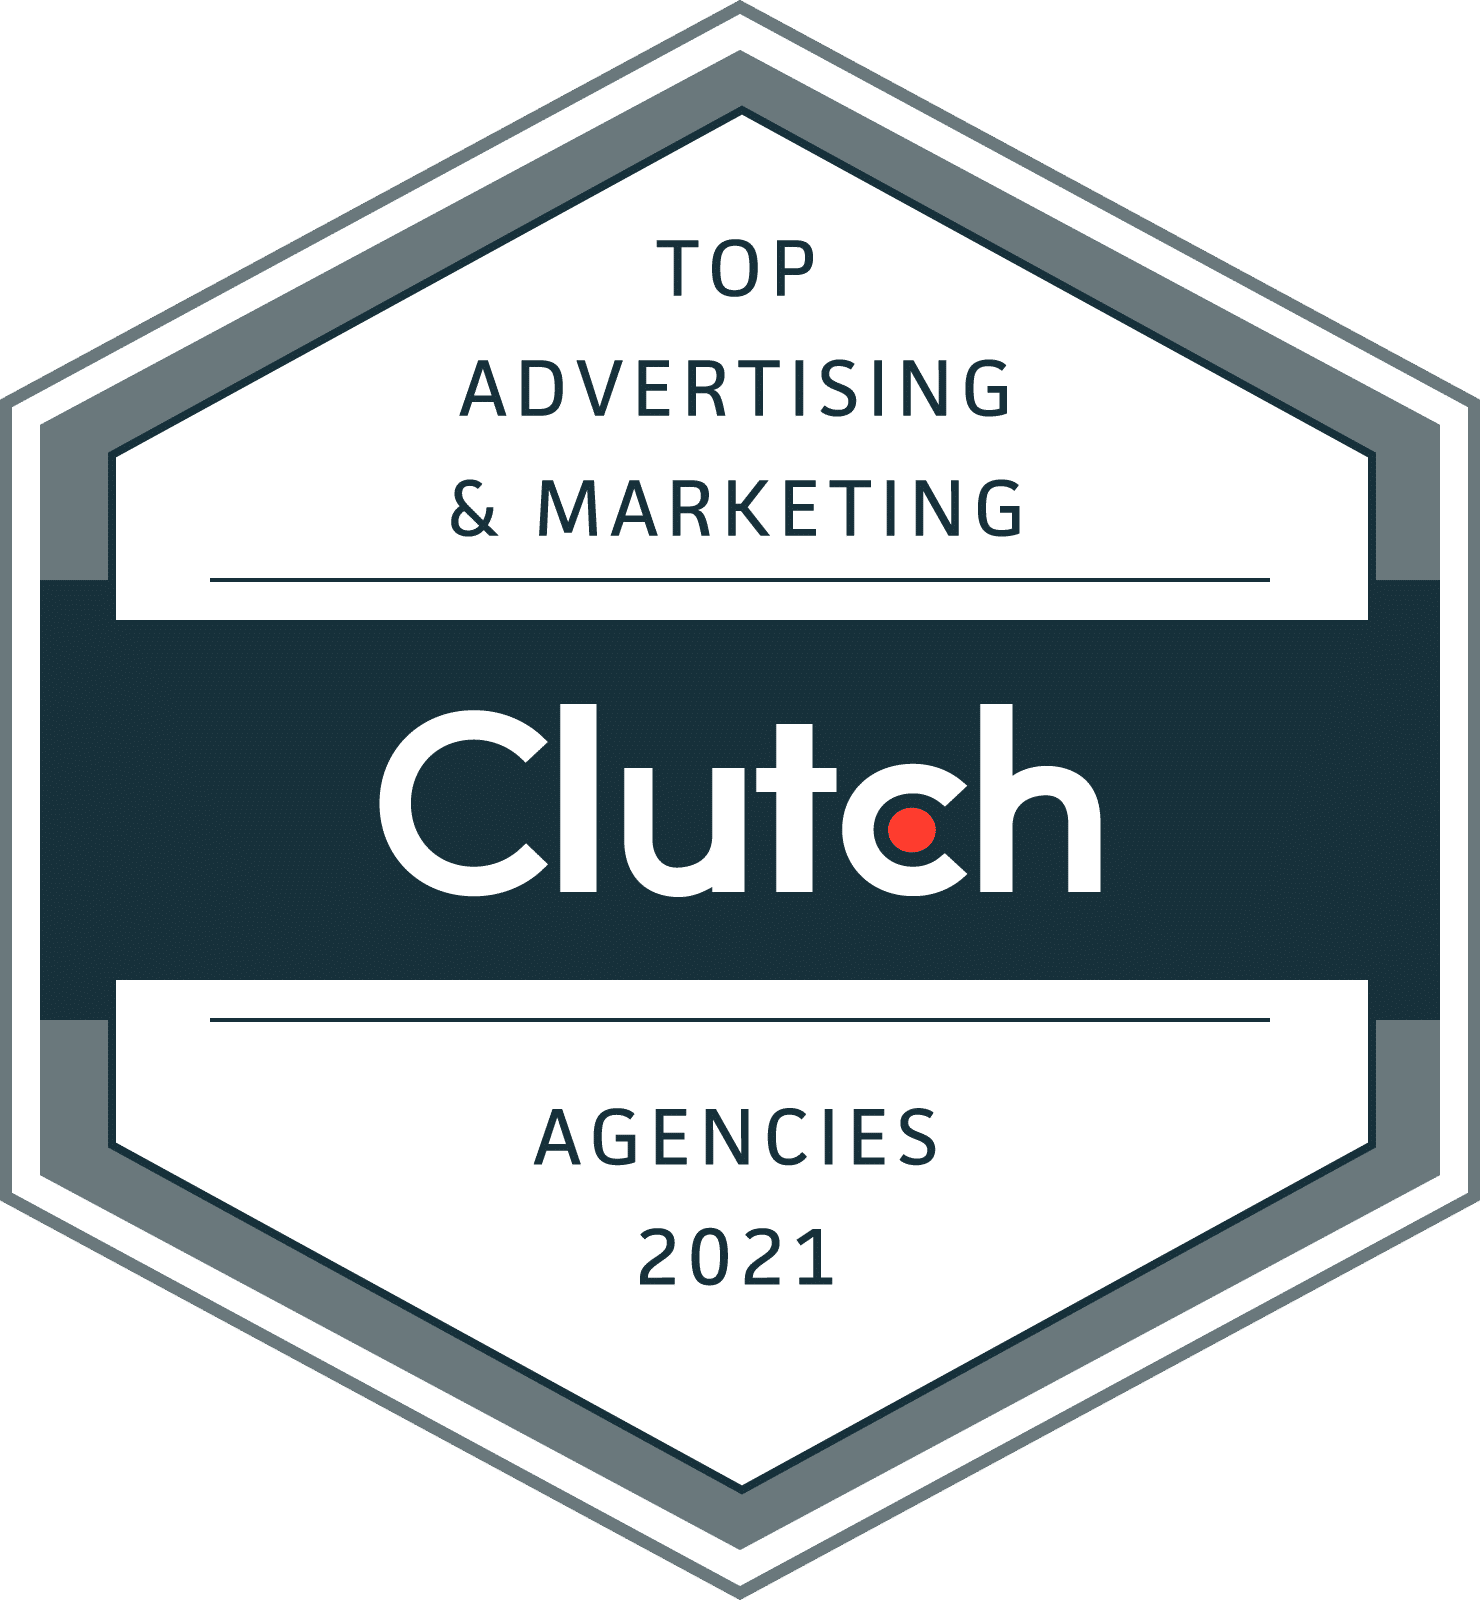 Top Advertising and Marketing Agencies in 2021 by Clutch